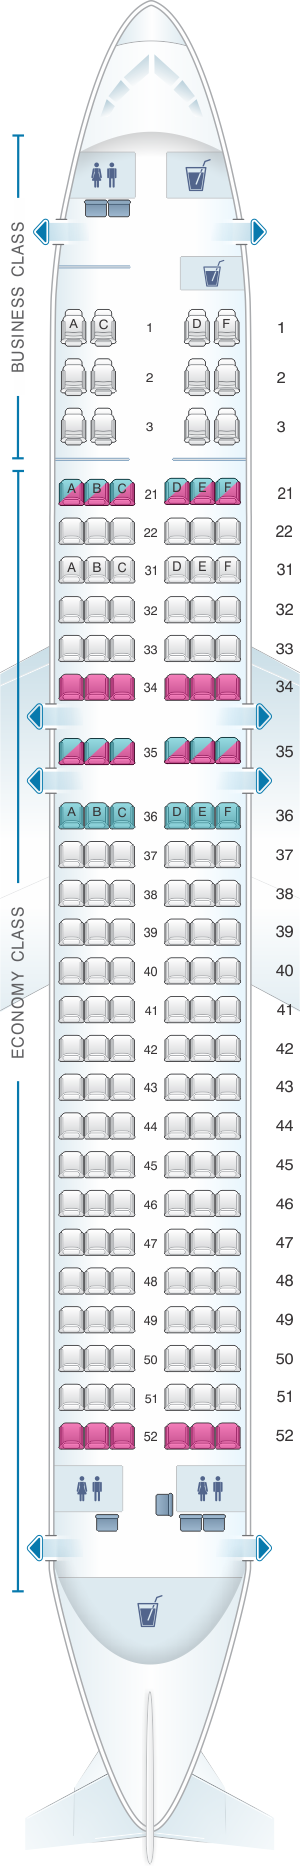 Seat map for Philippine Airlines Airbus A320 200 V1